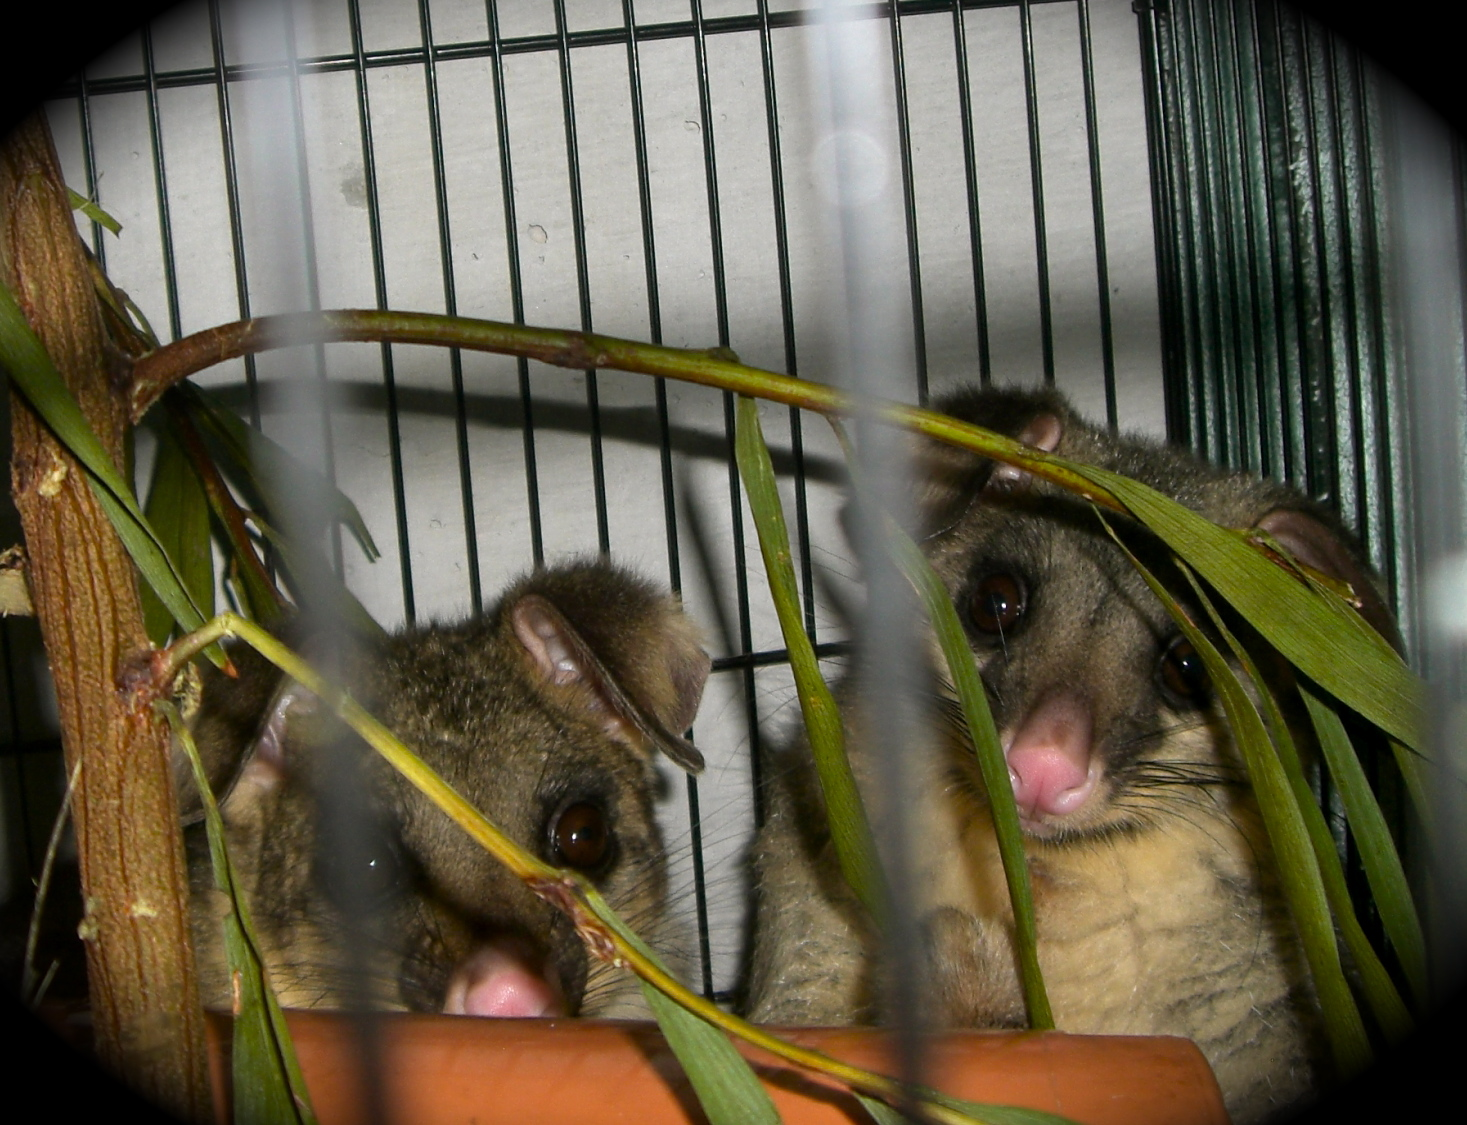 WIRES - Fatso & Fuzzy's Brushtail Possum Rescue